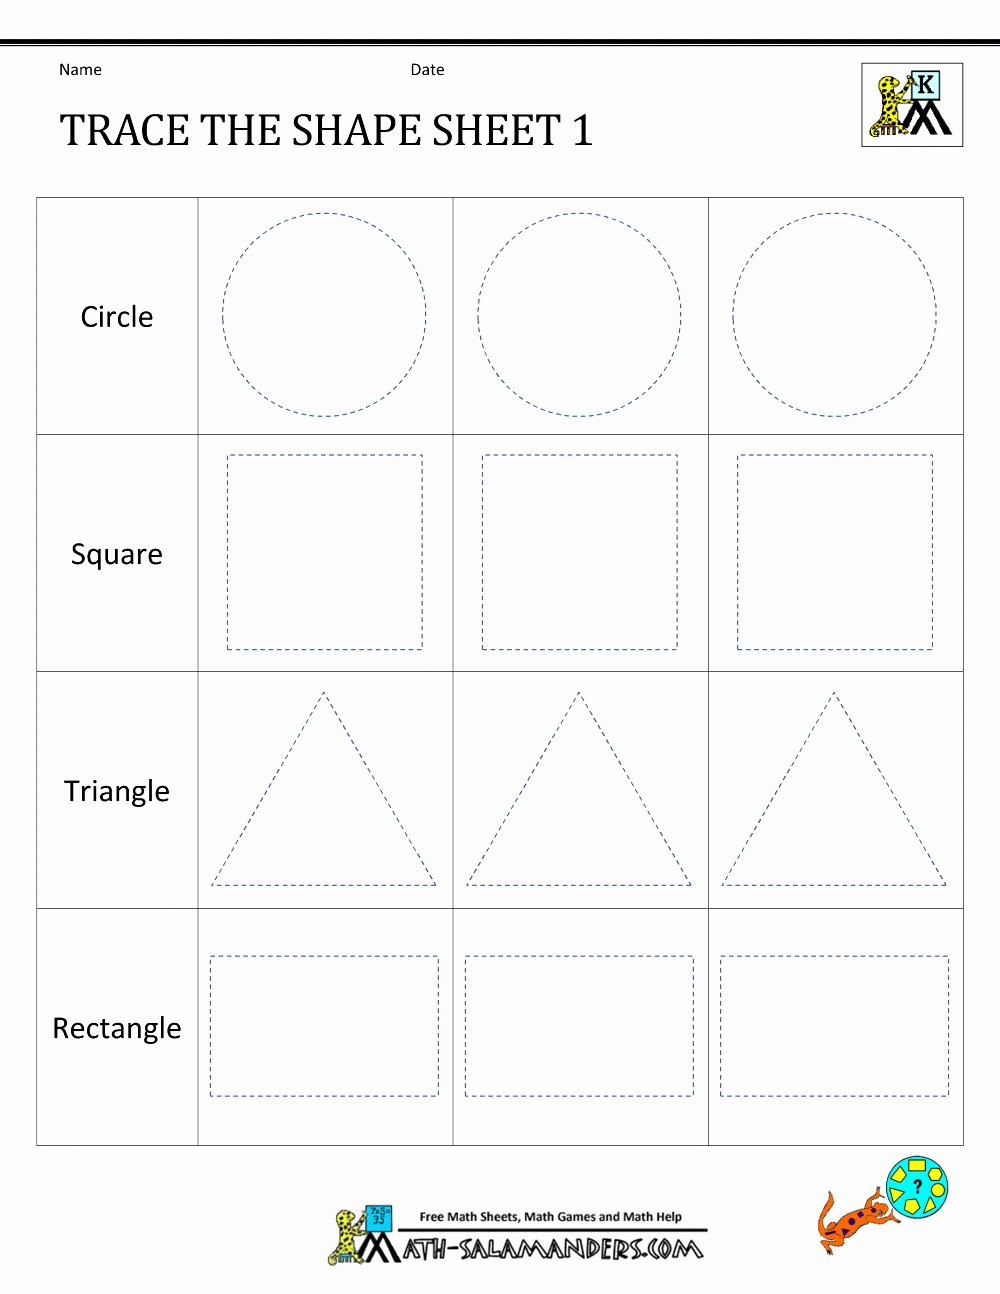 Printable Name Worksheets for Preschoolers Beautiful Free Namecing Worksheets Printable for Preschoolers